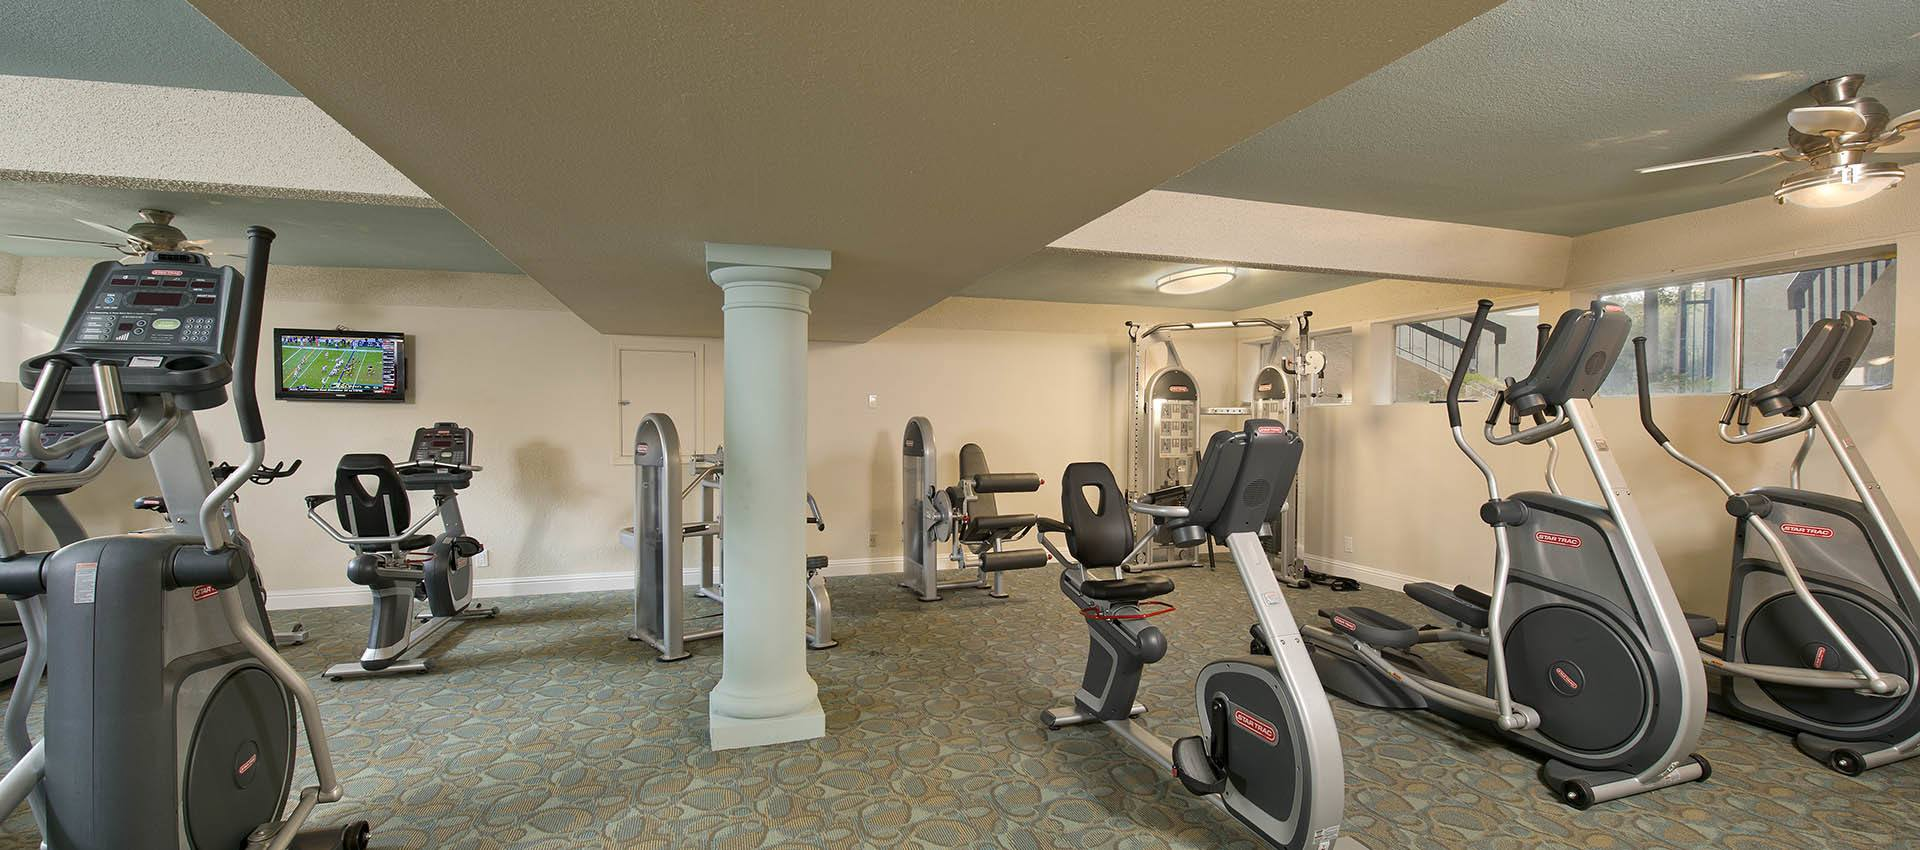 Fitness center at Atrium Downtown in Walnut Creek, California